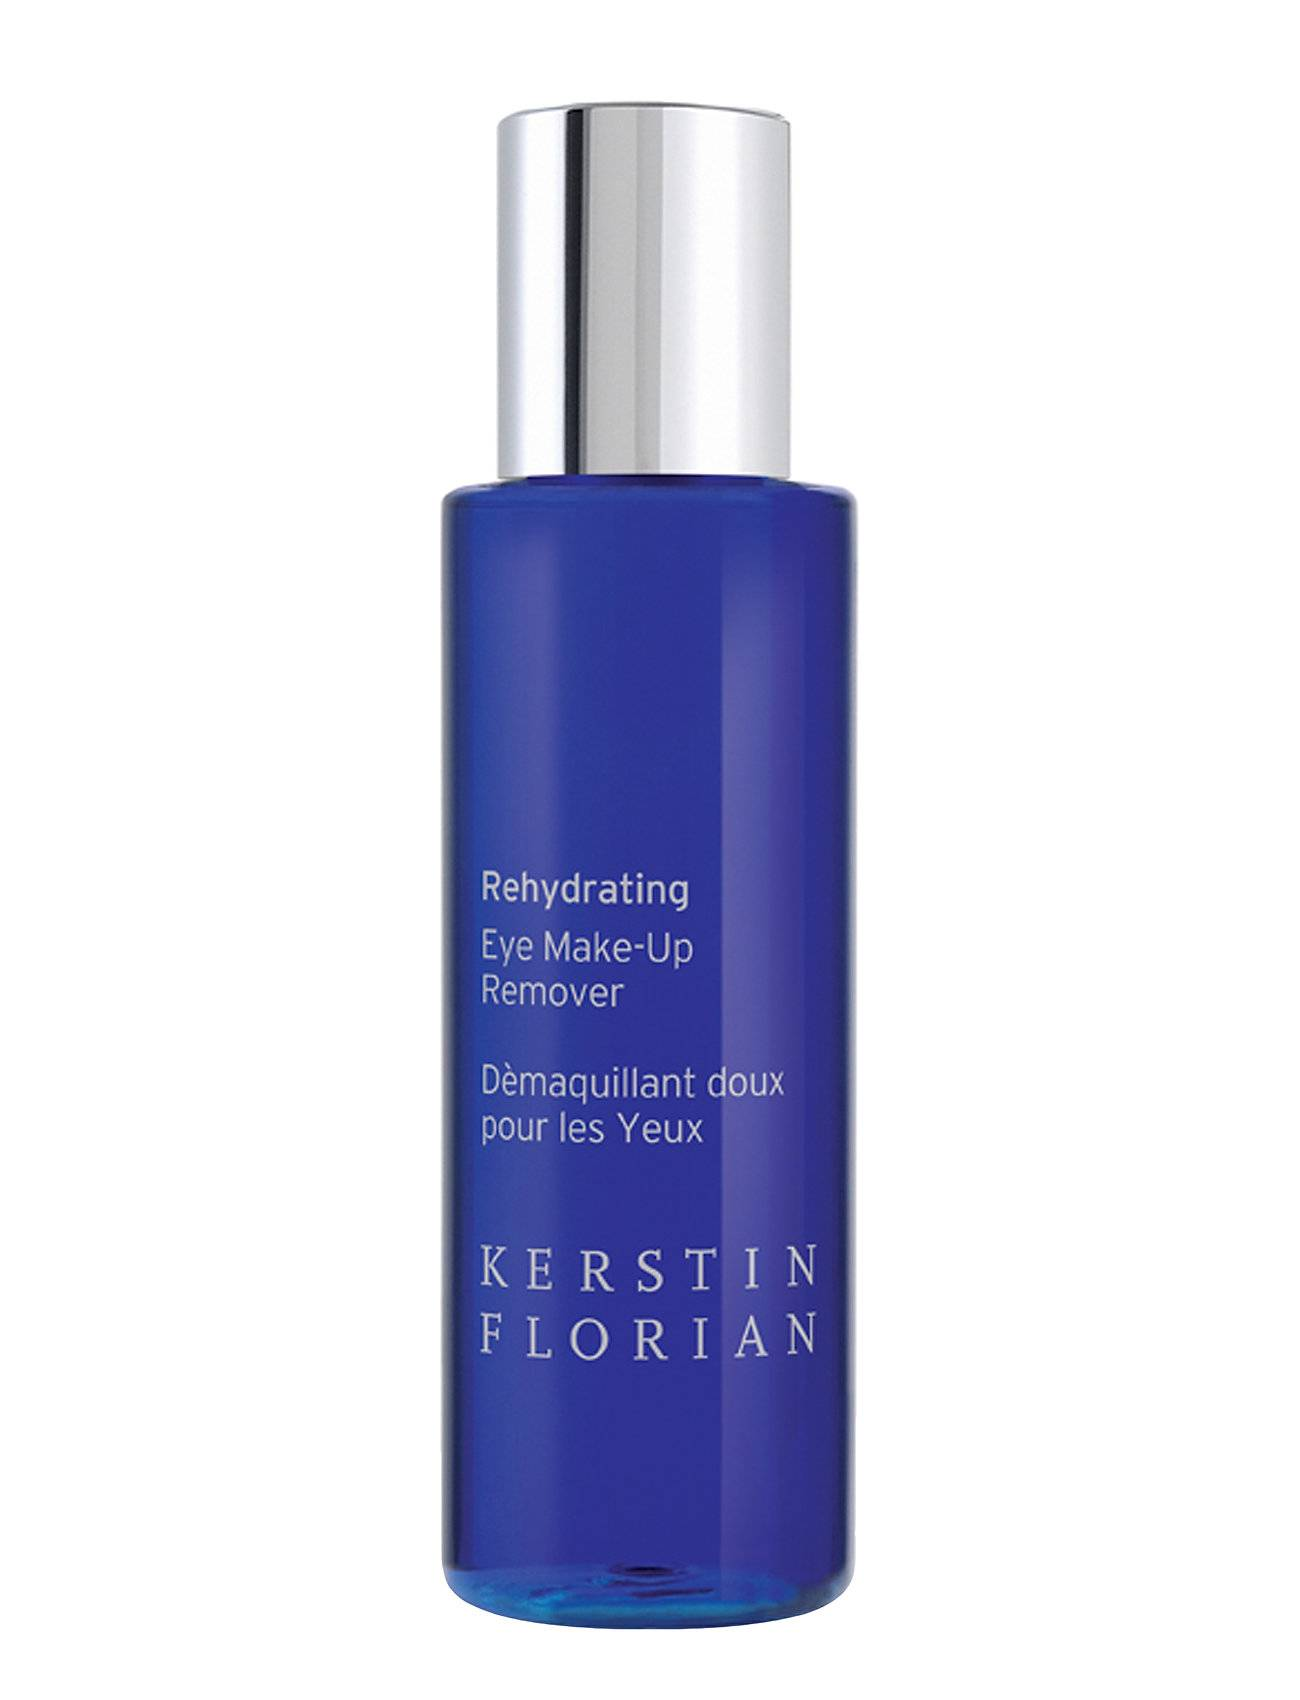 Kerstin Florian Rehydrating Eye Make-Up Remover